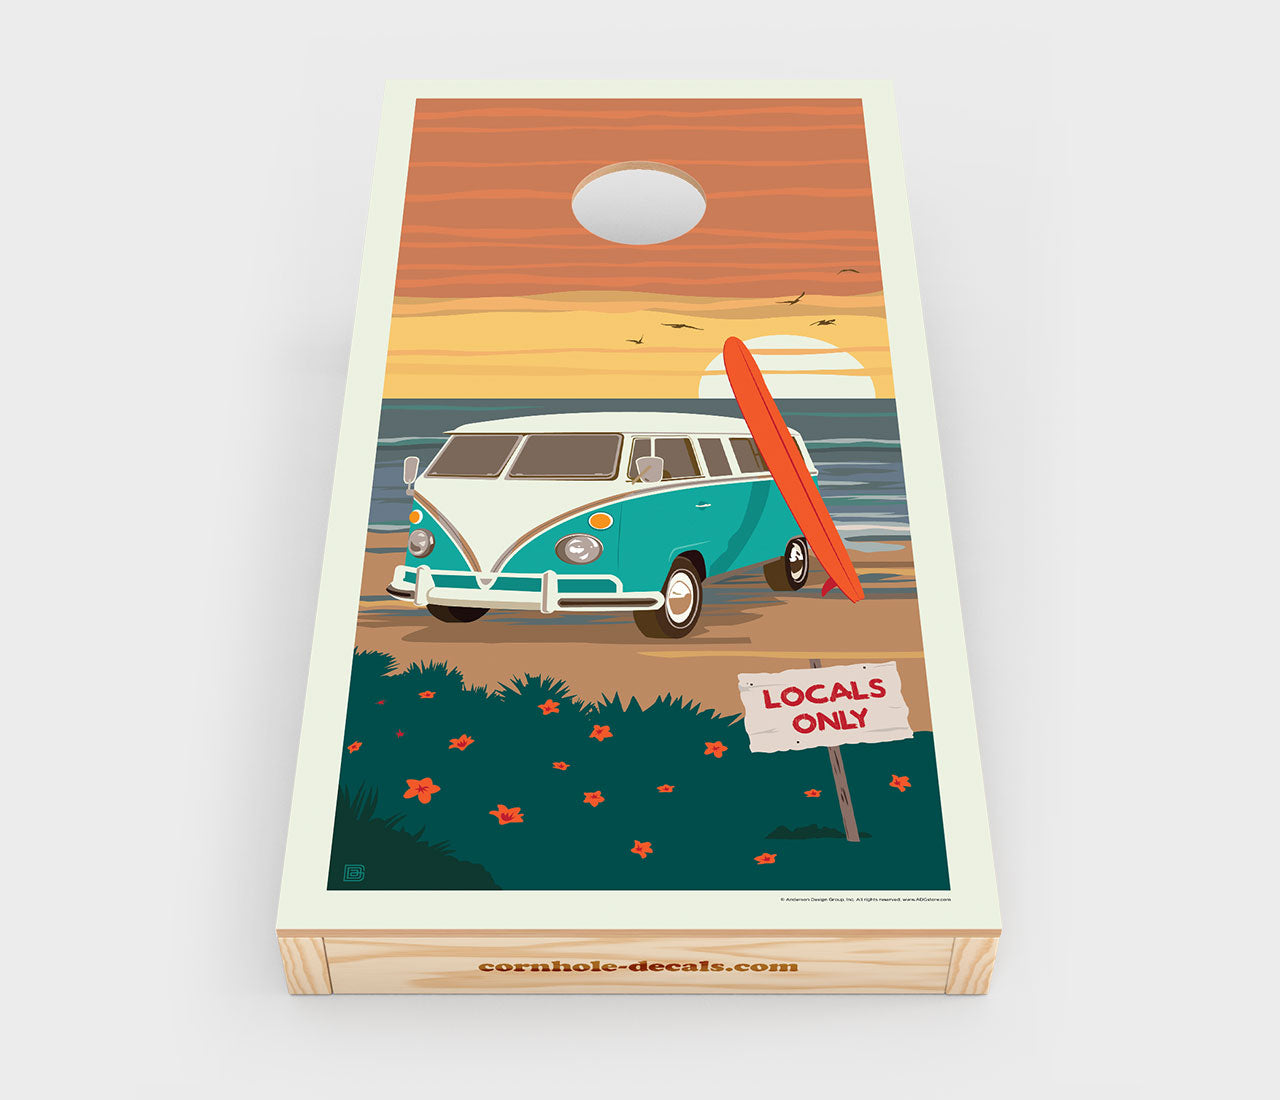 Locals Only: VW Surf Van Cornhole Decal